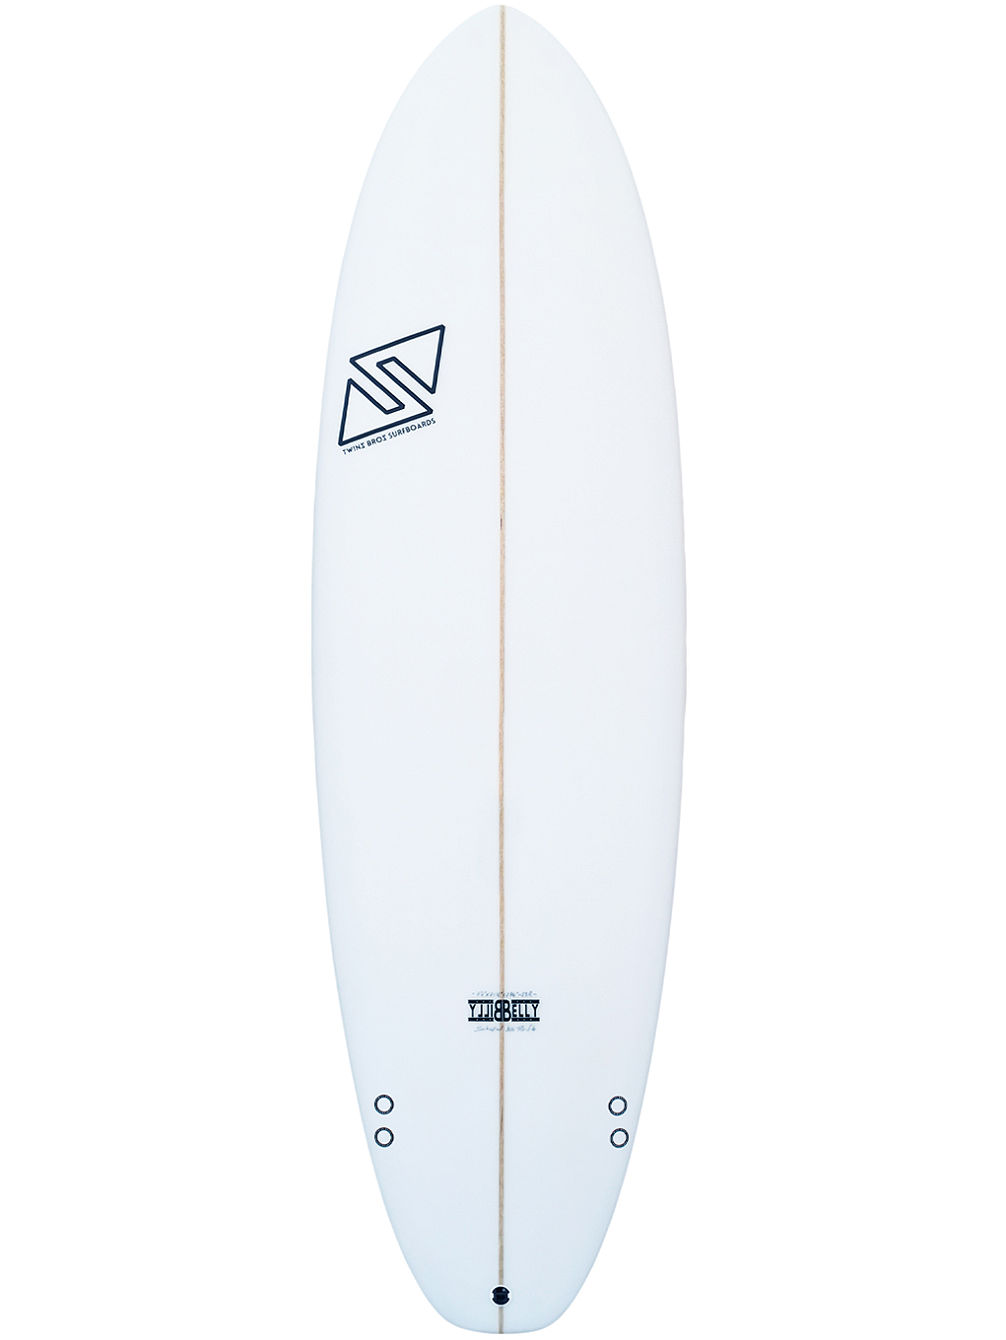 Billy Belly FCS 5'6 Surfboard